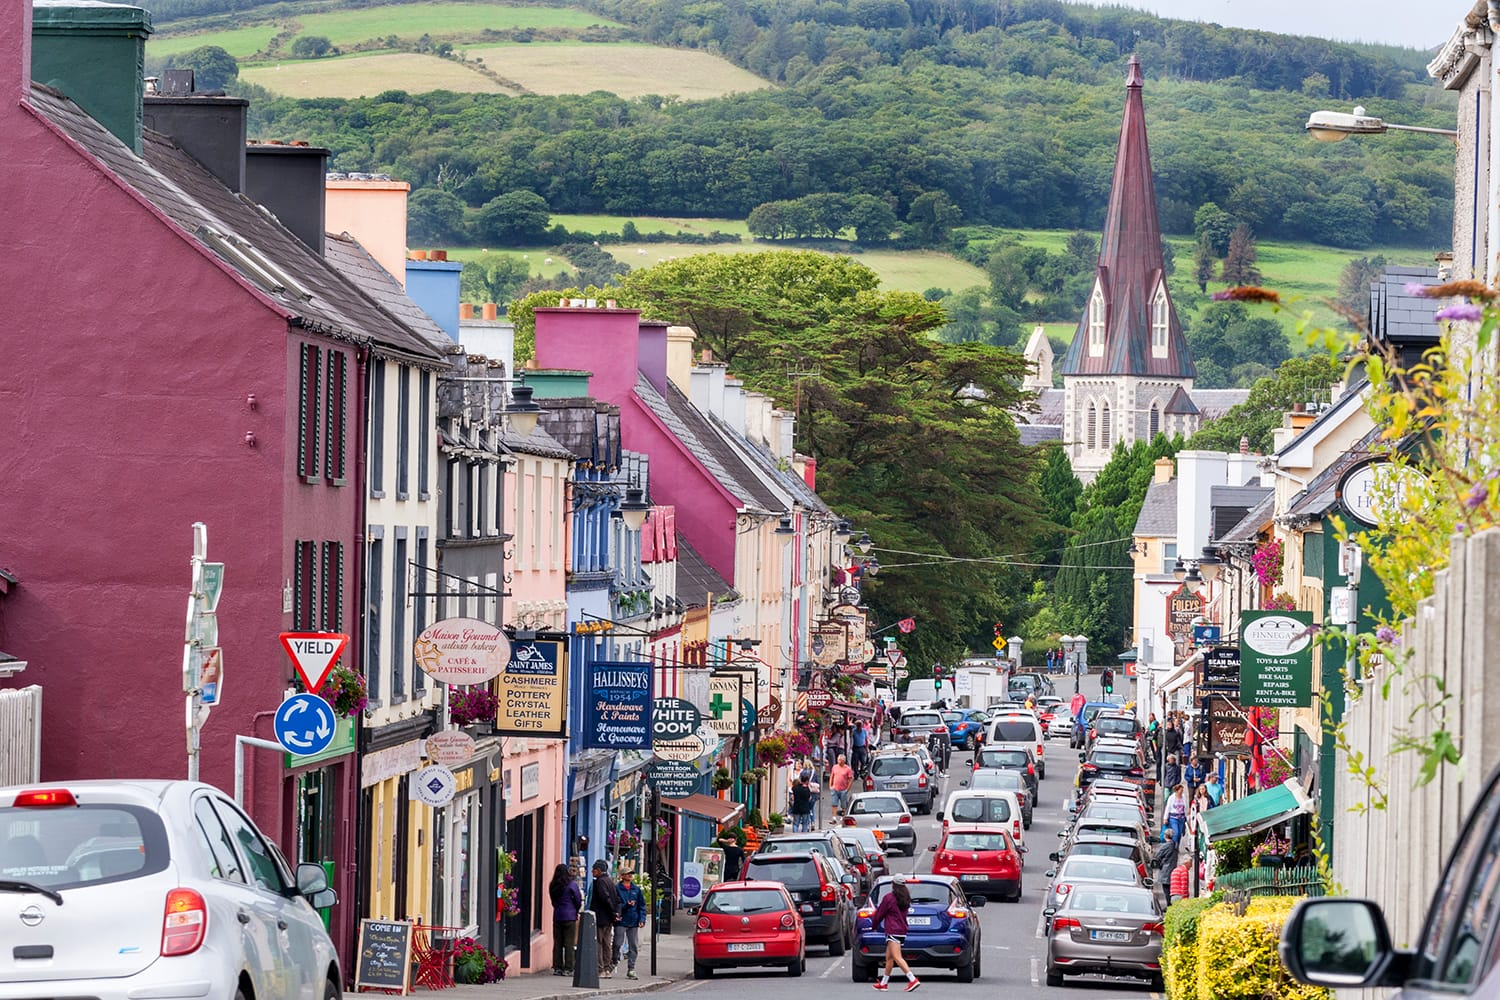 Pubs, bars and restaurant on Henry street in the tourist destination town of Kenmare, Ireland